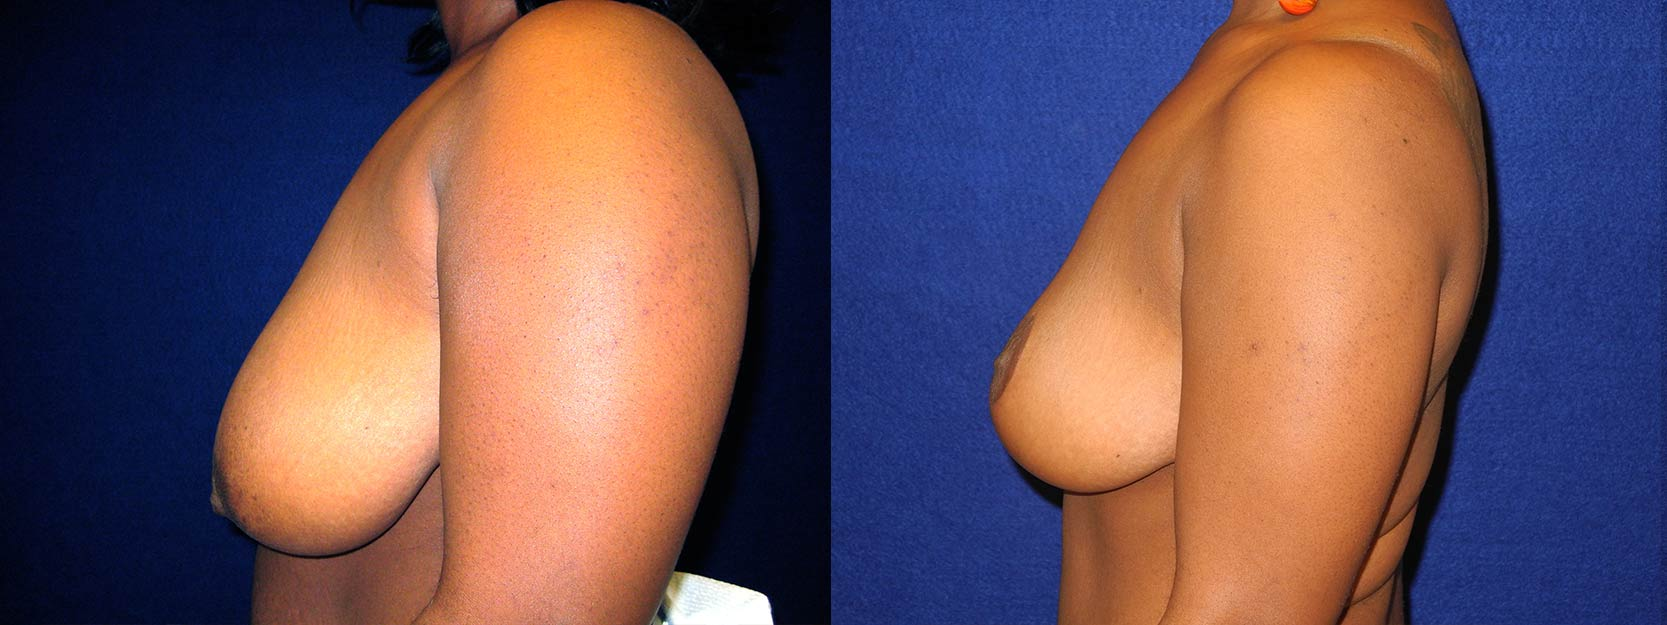 Left Profile View - Breast Reduction Lift